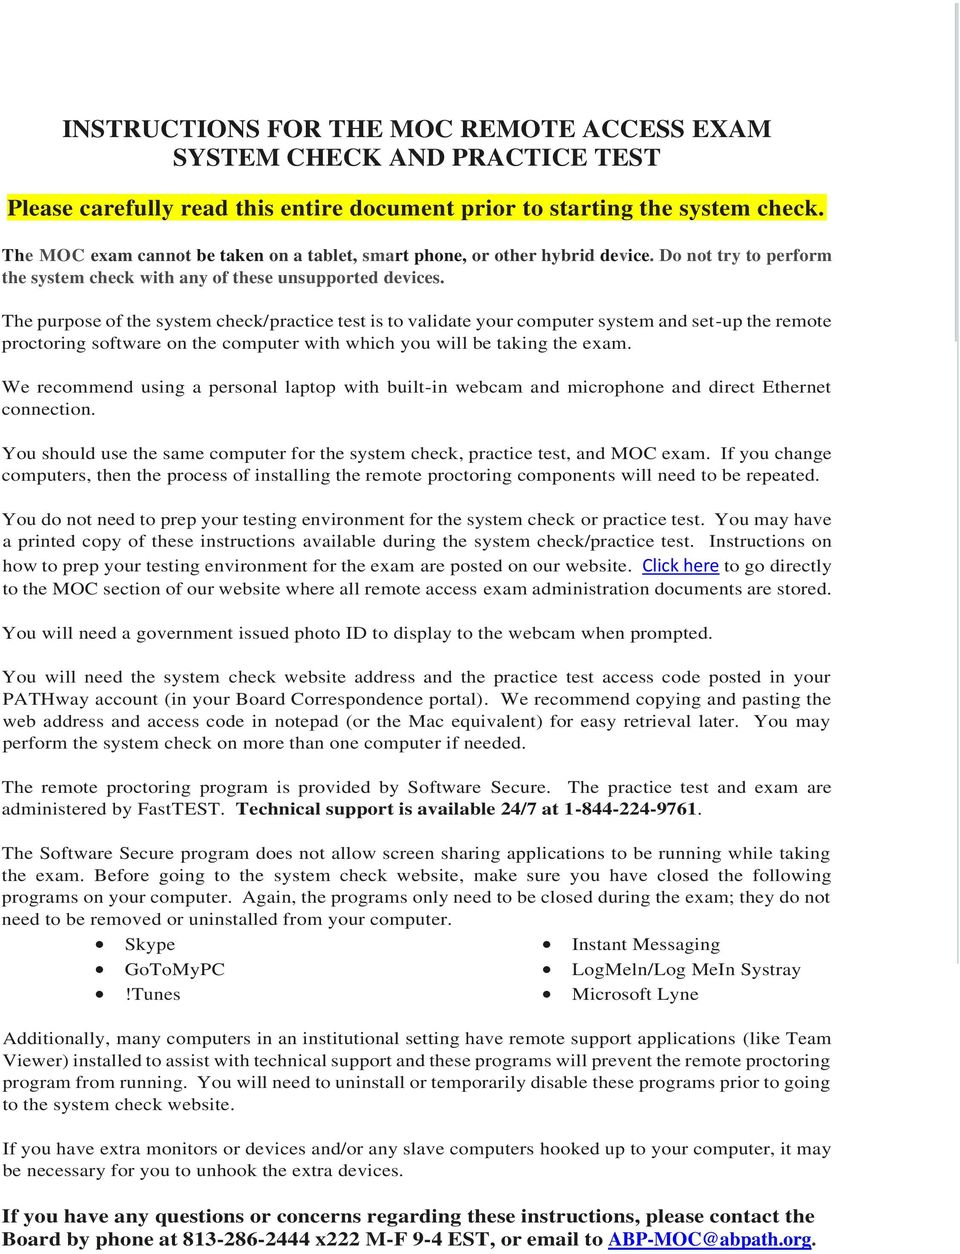 INSTRUCTIONS FOR THE MOC REMOTE ACCESS EXAM SYSTEM CHECK AND